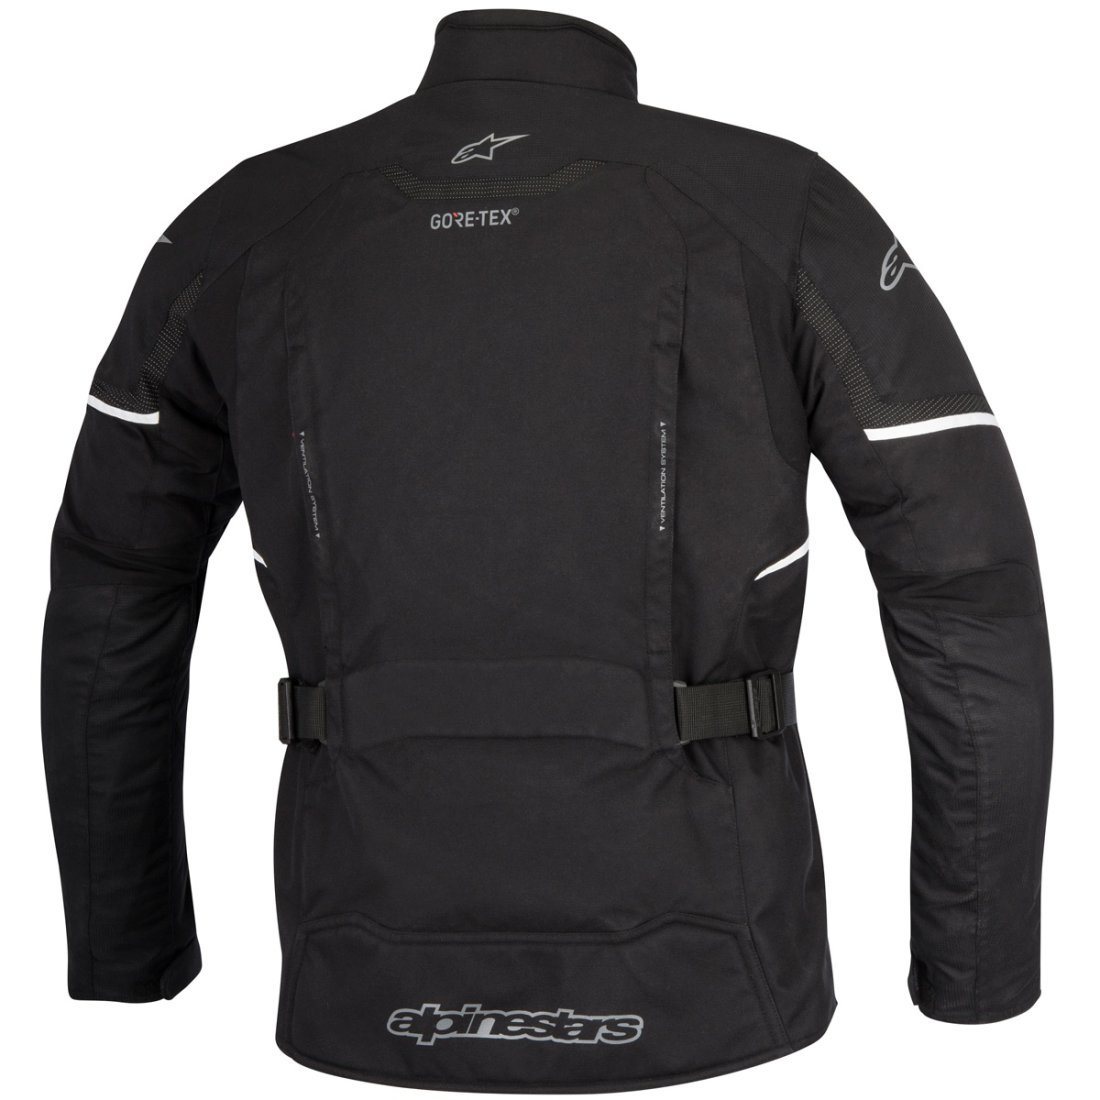 GORE-TEX SHAKEDRY™ Product Technology | GORE-TEX Brand